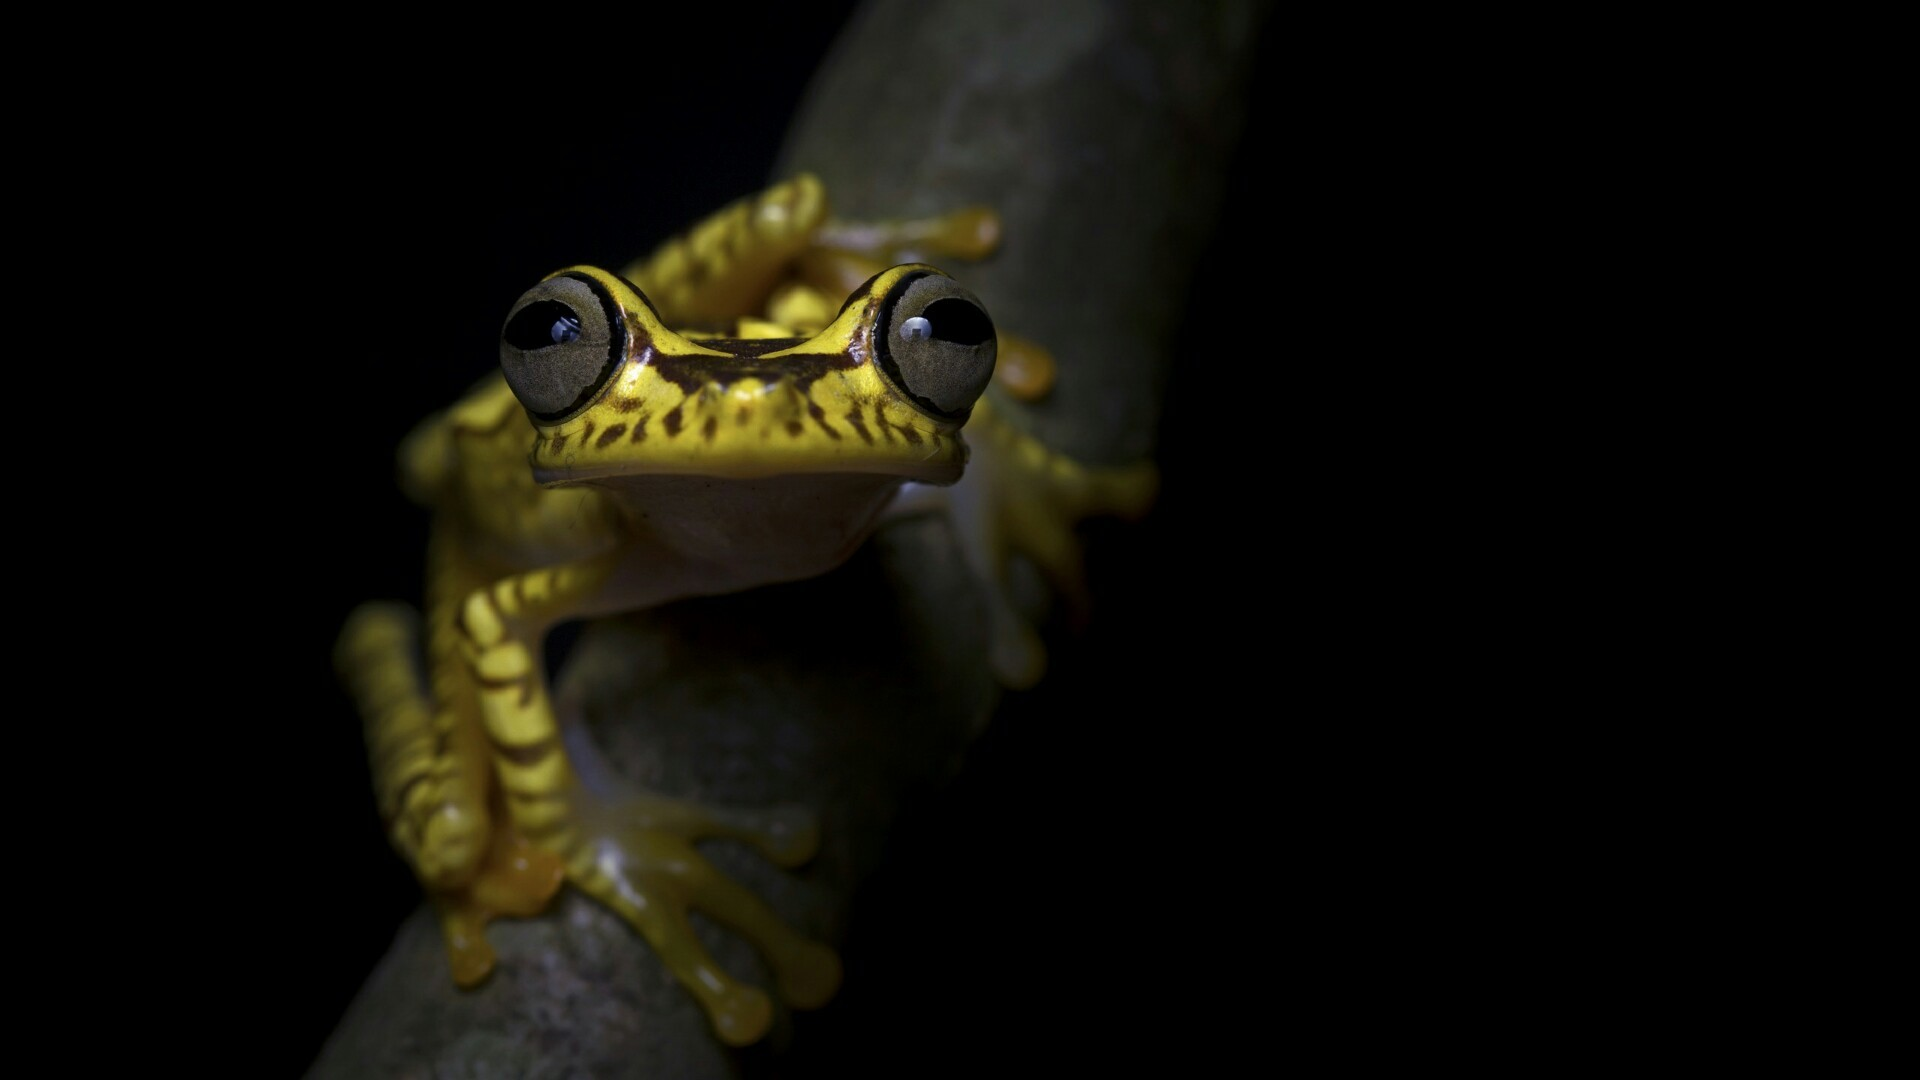 Res: 1920x1080, Imbabura Tree Frog Wallpaper | Wallpaper Studio 10 | Tens of thousands HD  and UltraHD wallpapers for Android, Windows and Xbox